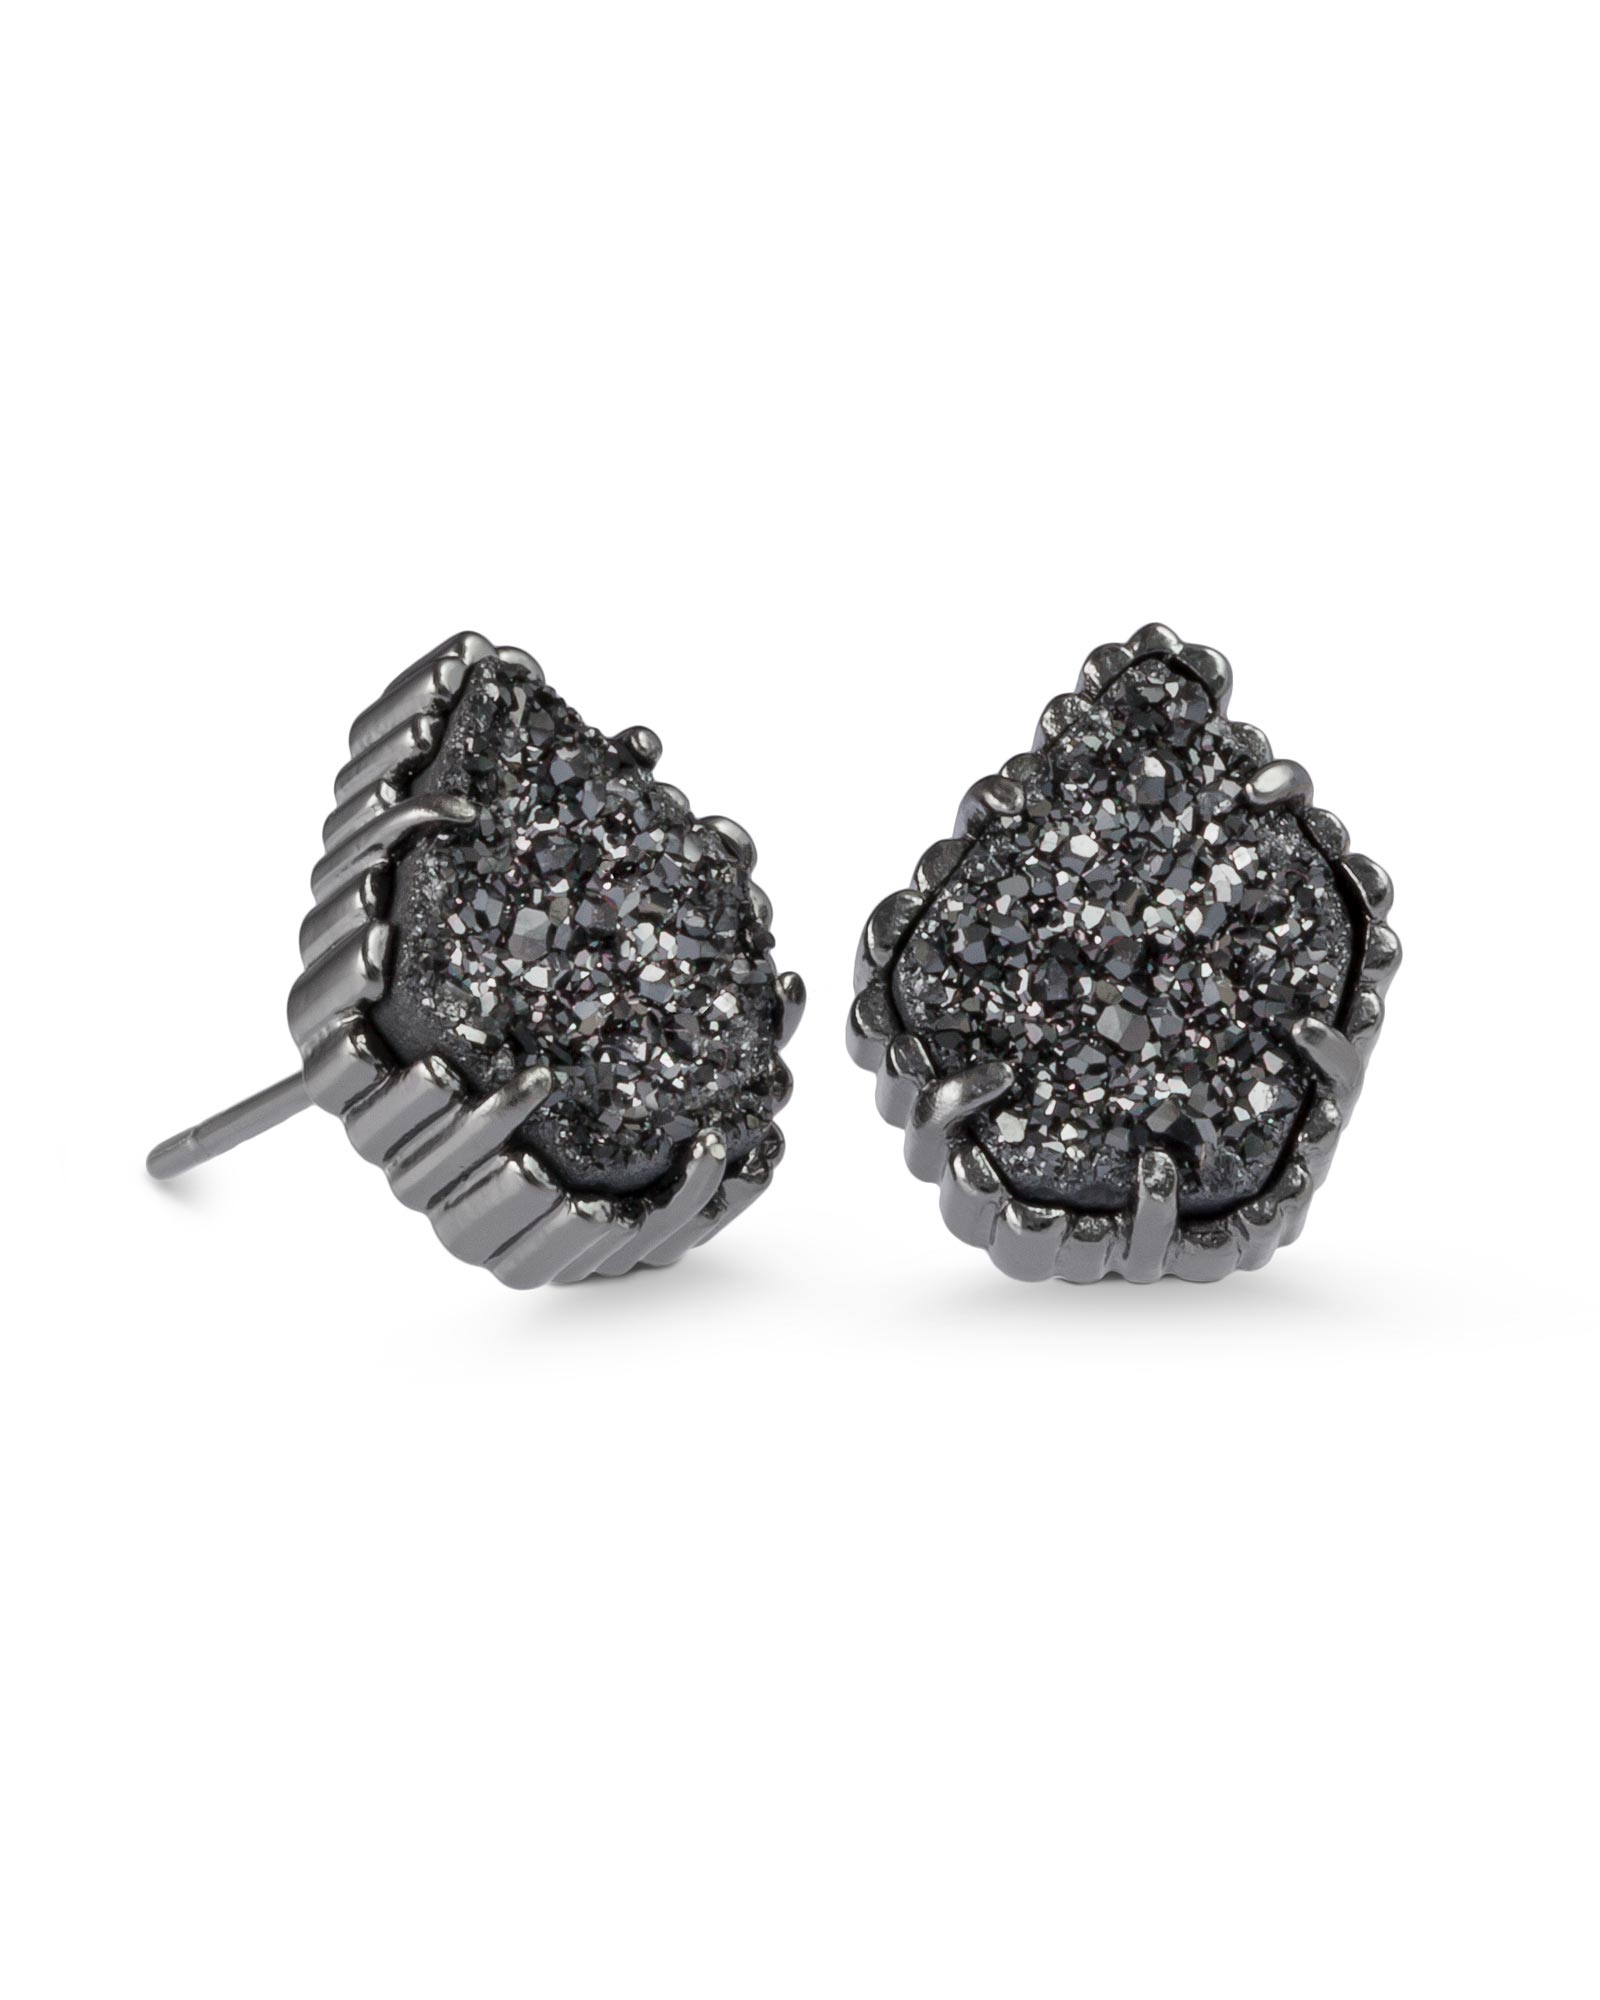 KENDRA SCOTT TESSA EARRINGS IN GUNMETAL